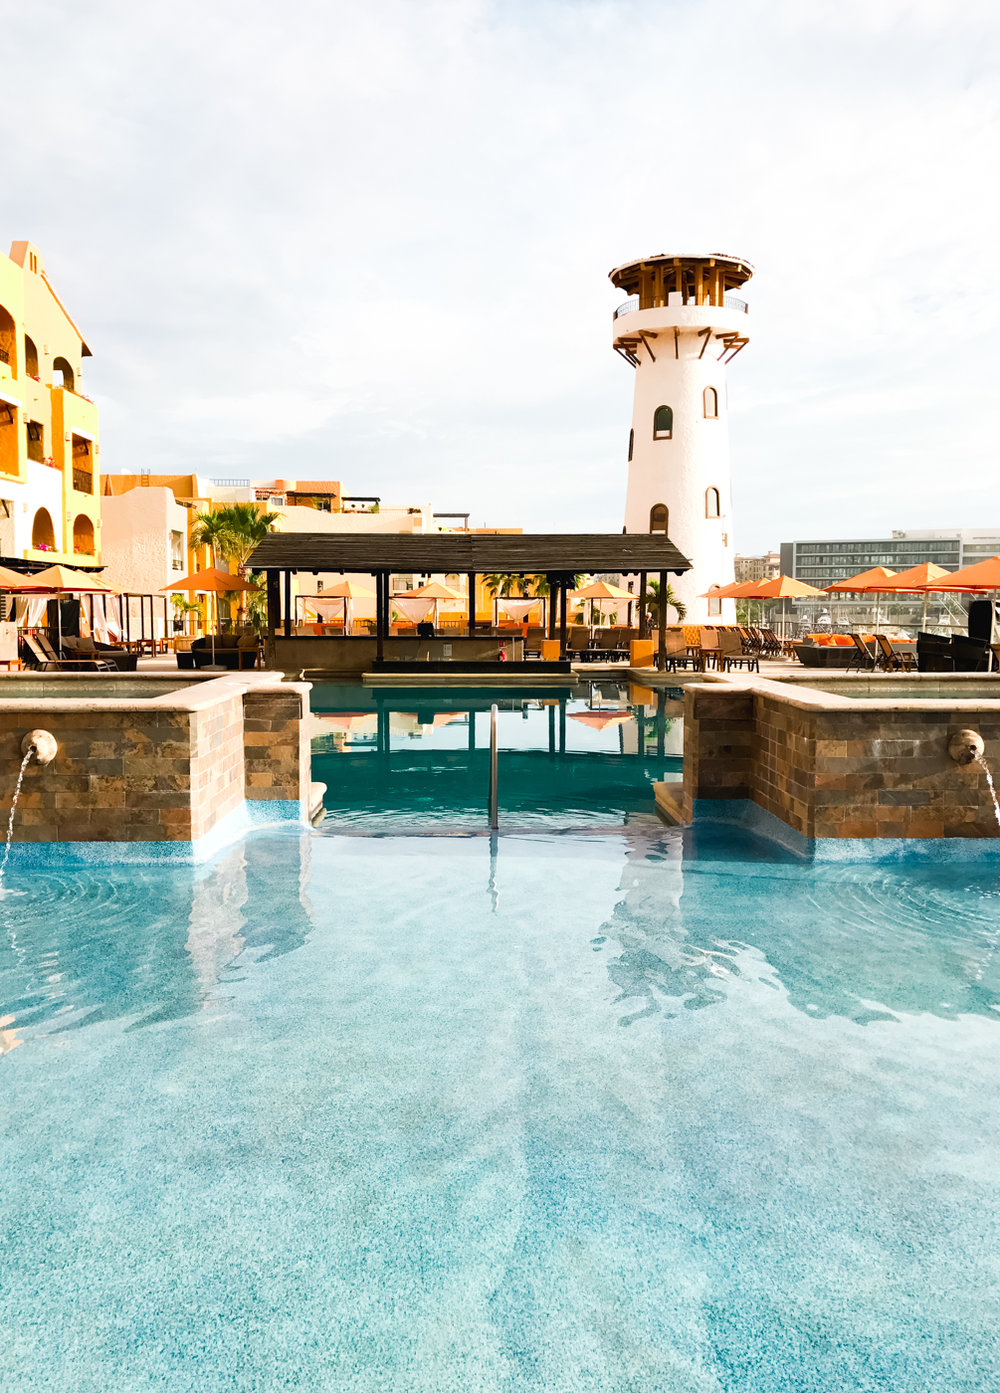 Jacuzzis and swim-up bar at Tesoro Los Cabos